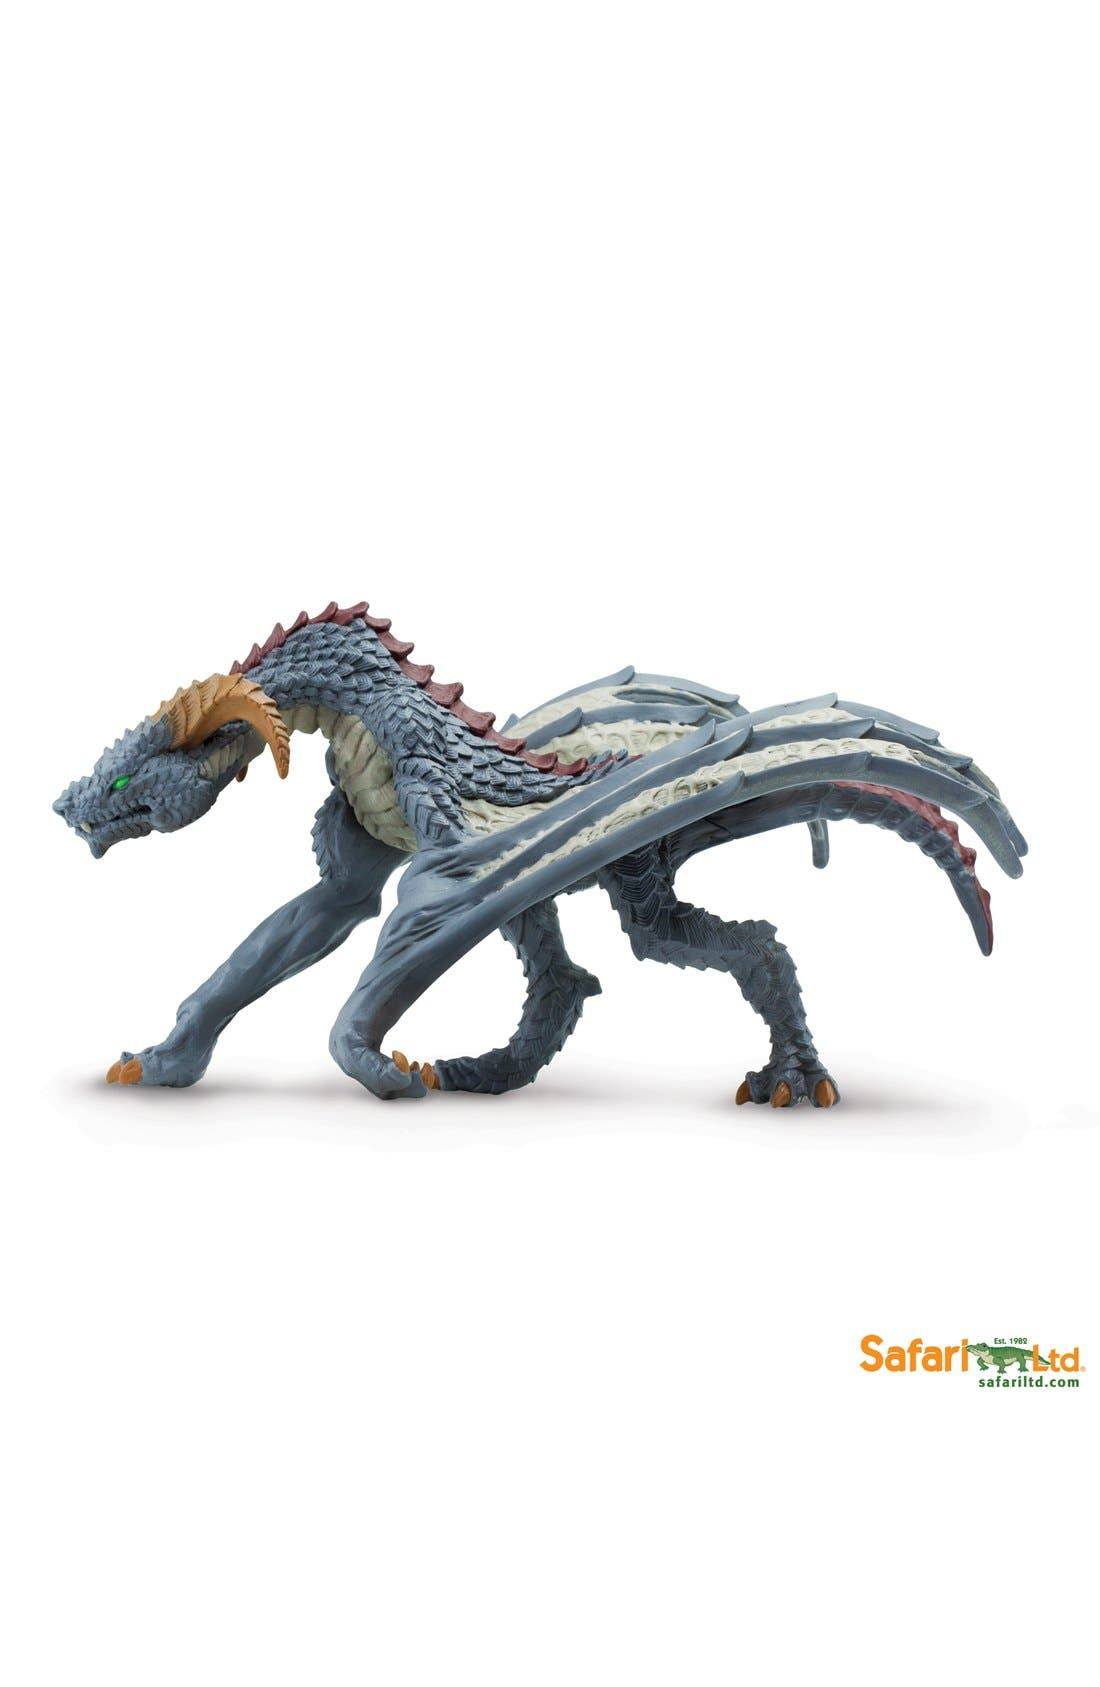 Safari Ltd. Cave Dragon Figurine